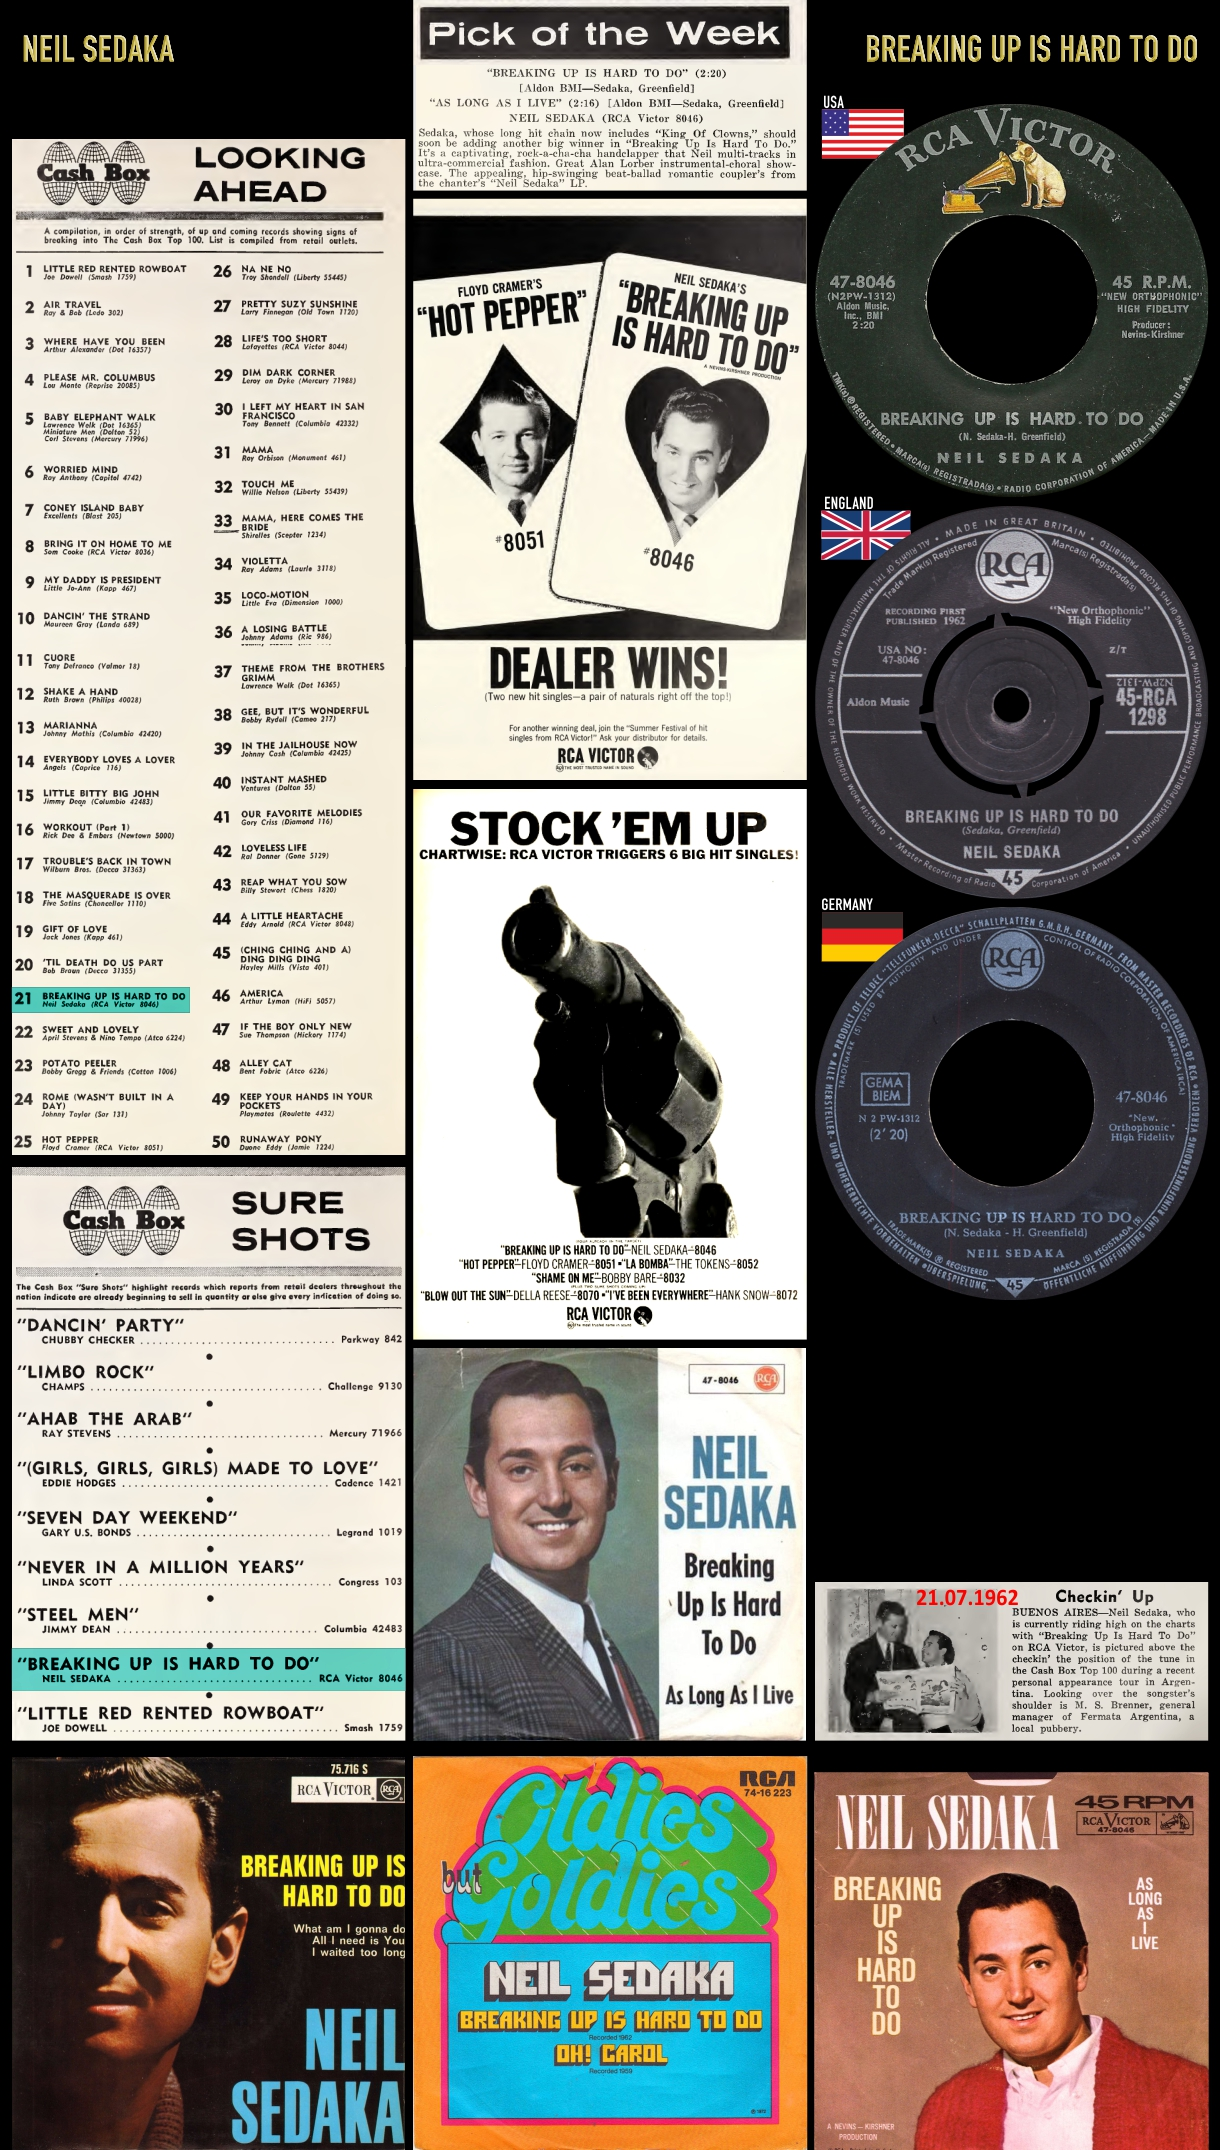 620811_Neil Sedaka_Breaking Up Is Hard To Do